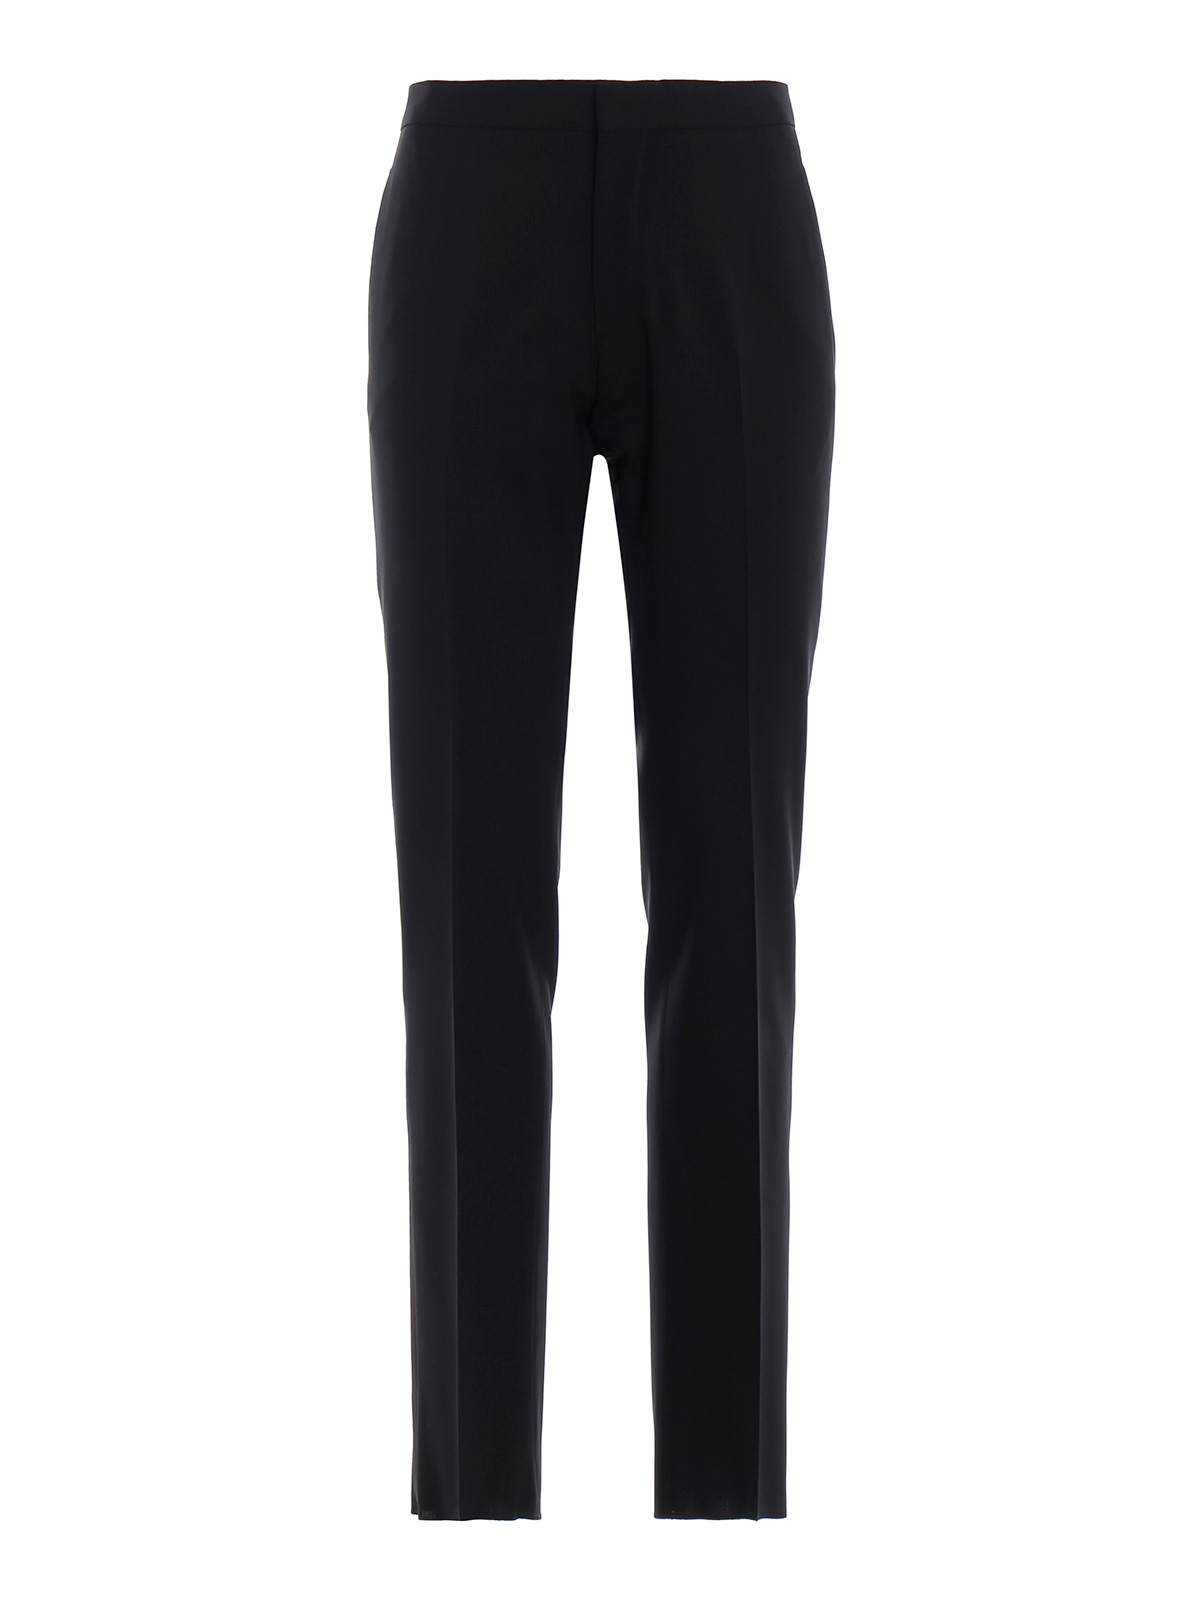 Picture of EMPORIO ARMANI | Men's Satin Band Trousers